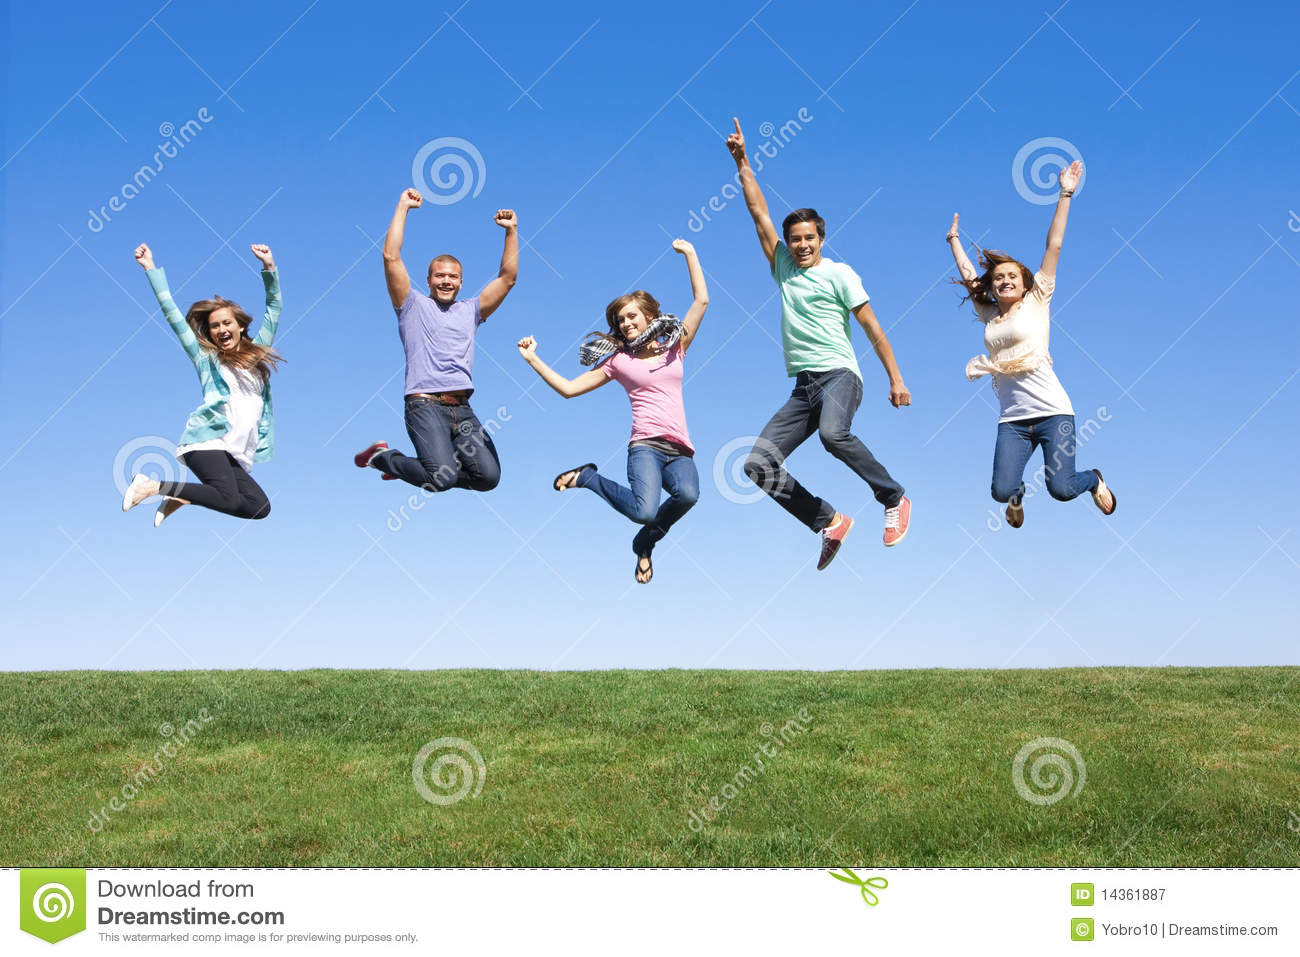 Young Friends Jumping and Having Fun